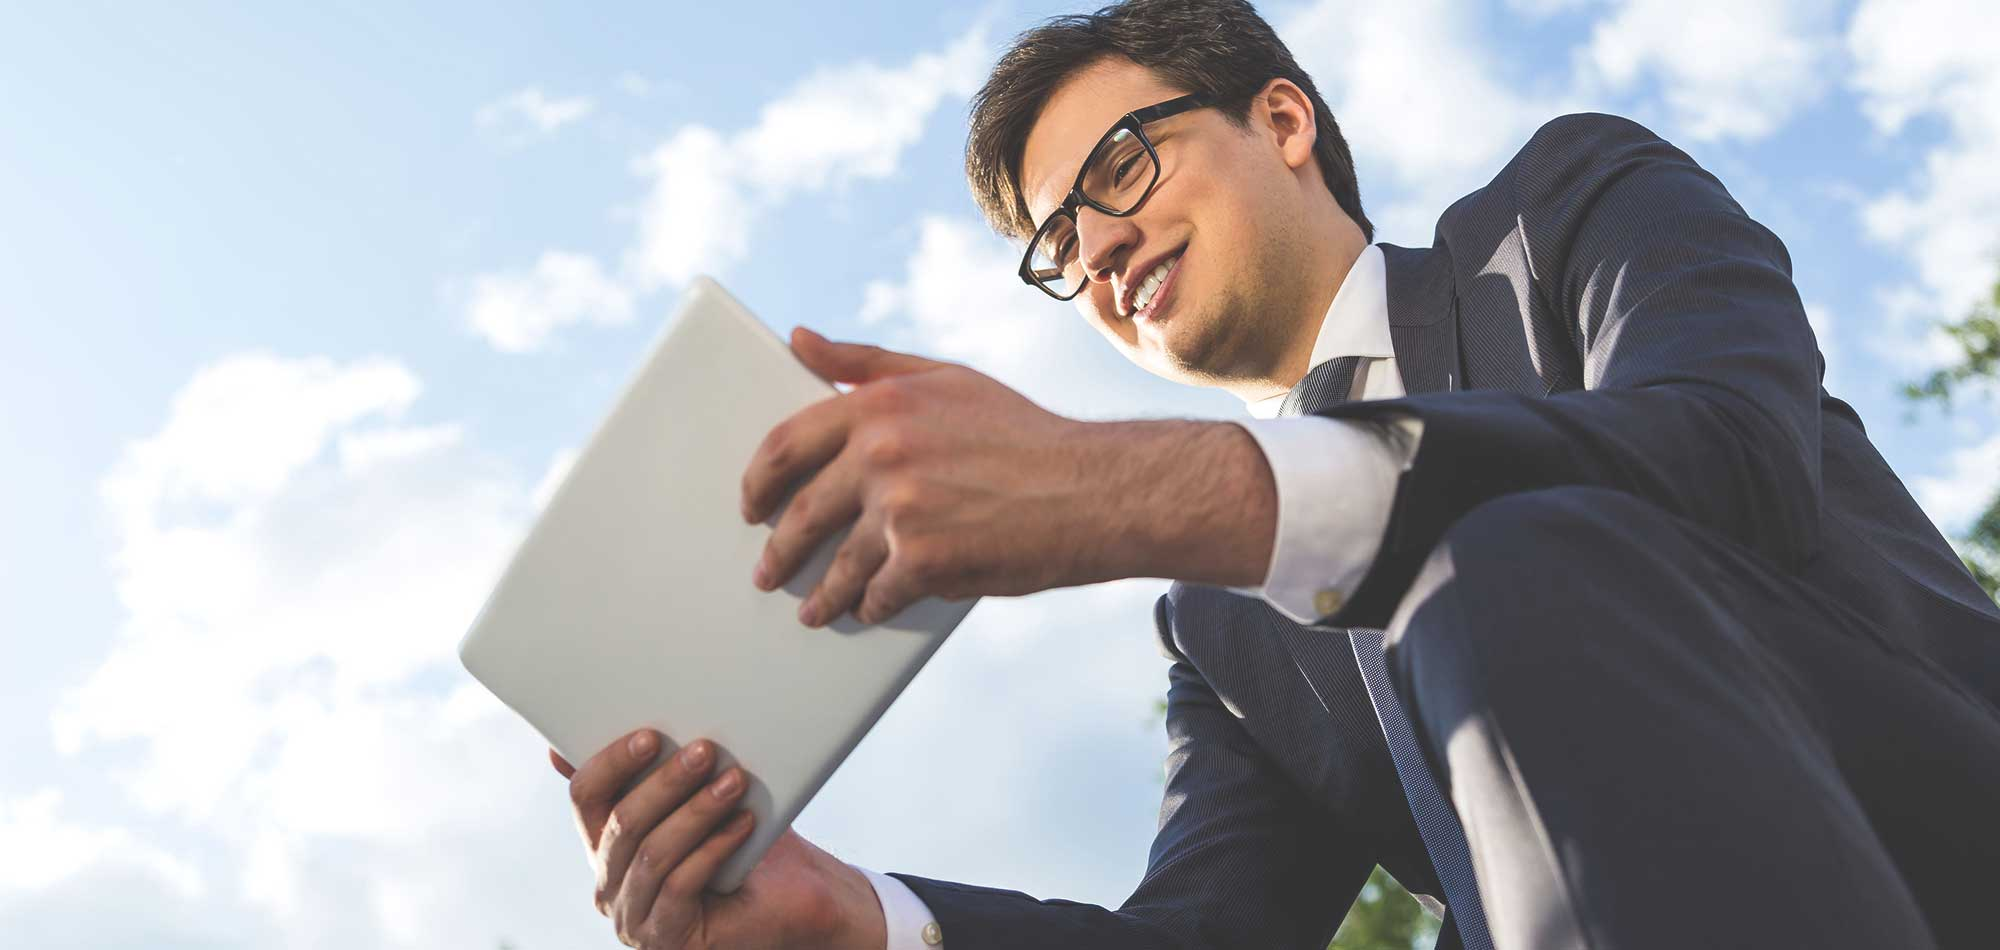 Deploying Outdoor Wi-Fi: 5 Major Challenges to Overcome